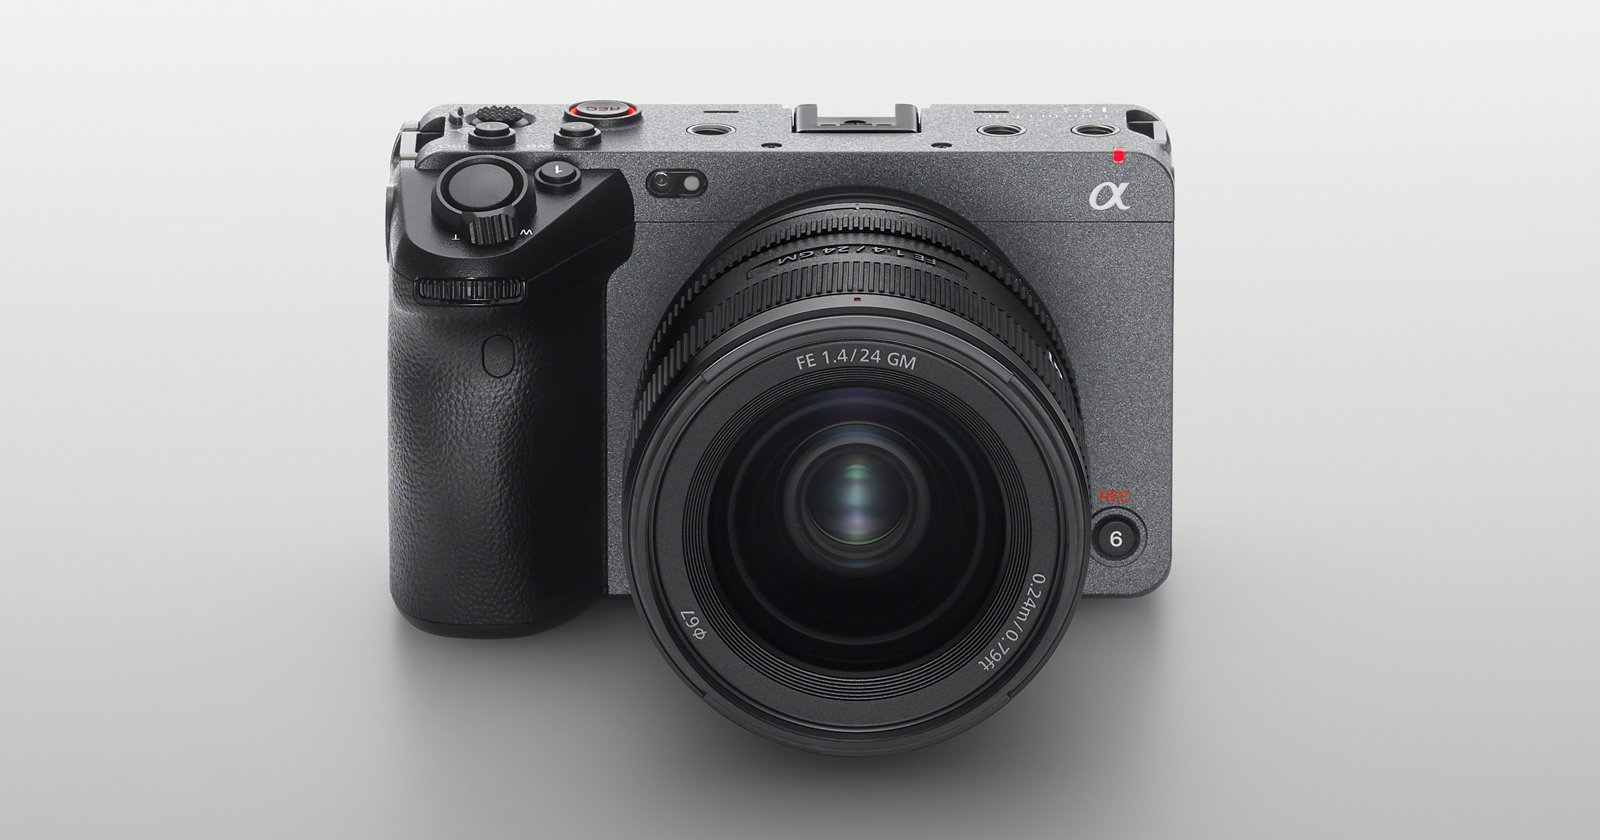 Sony Reveals the FX3, an A7S III in a Compact Cinema-Focused Body